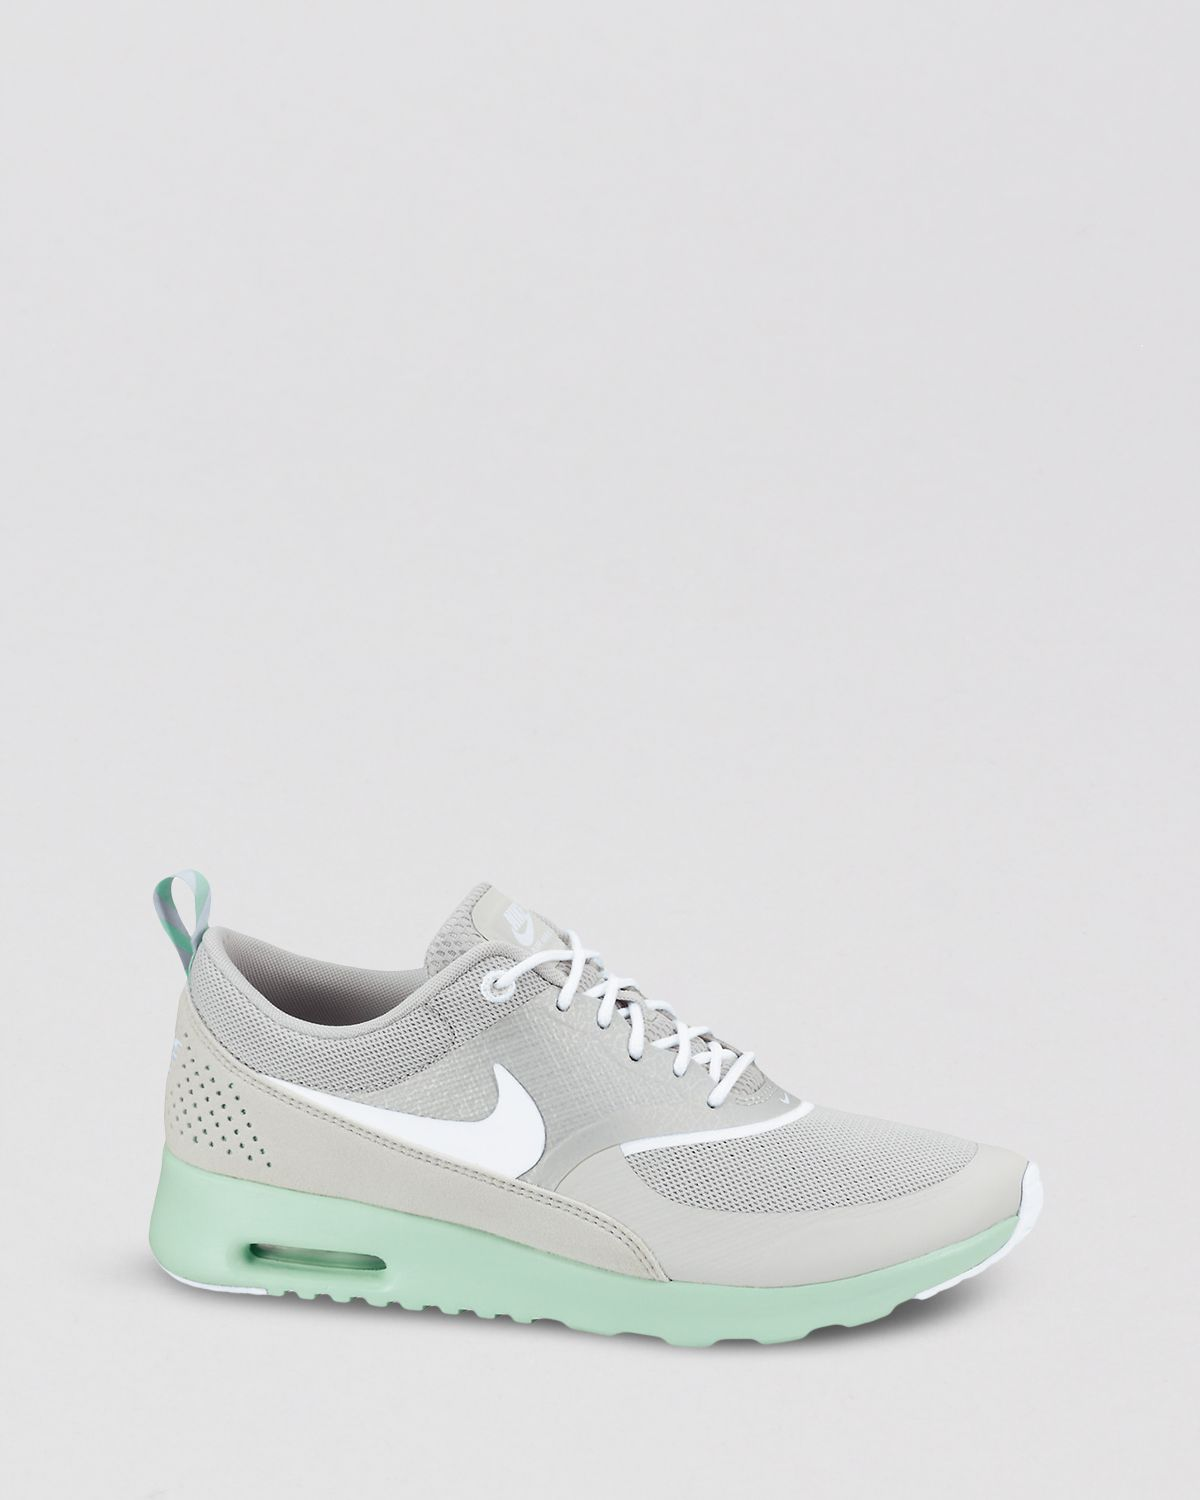 Nike Air Max Thea, Women's Trainers